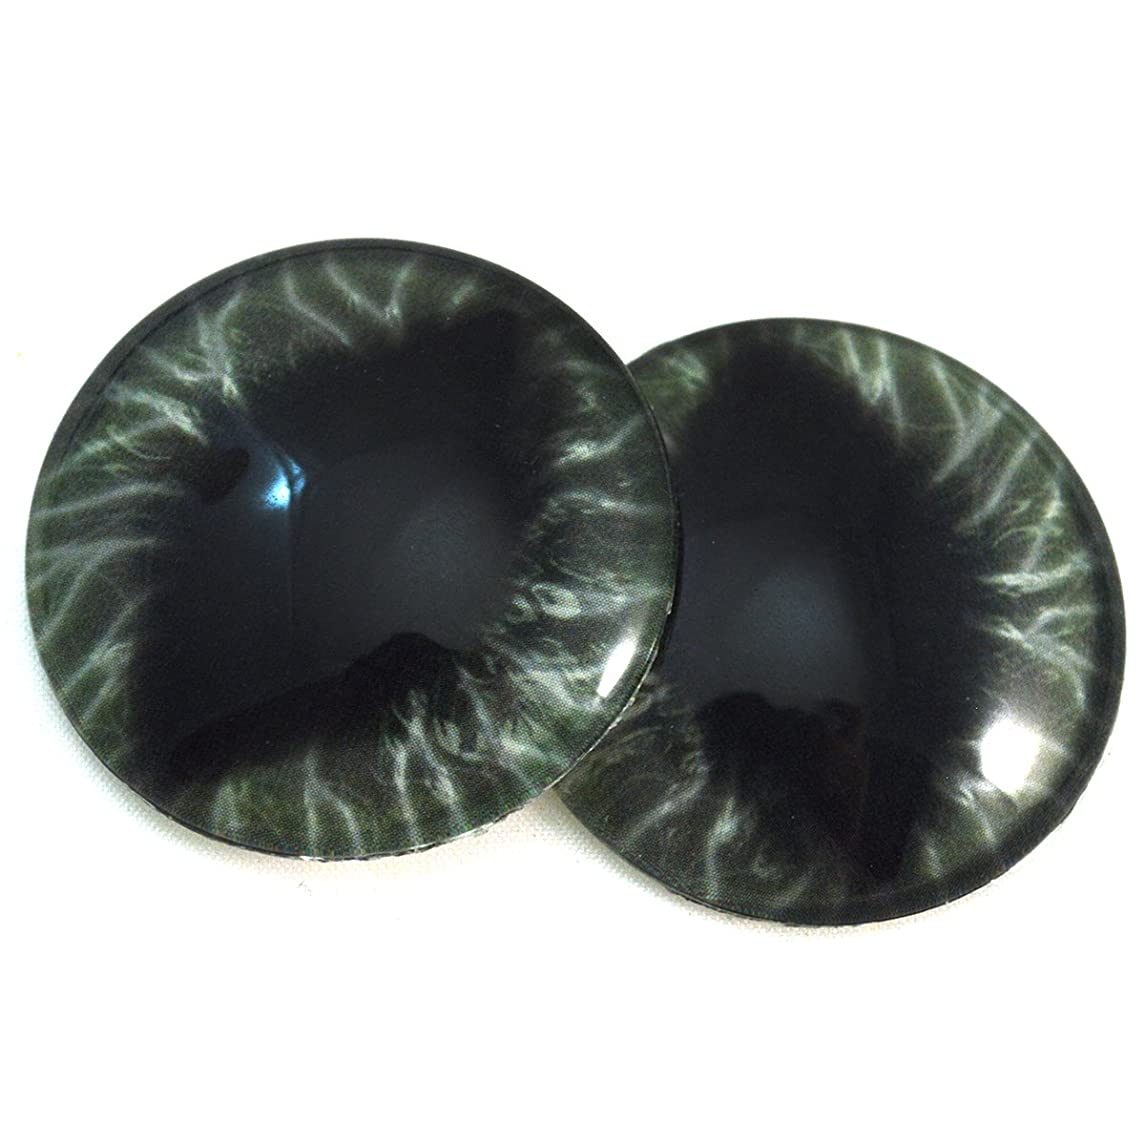 40mm Dark Green Dragon Glass Eyes Fantasy Cabochons for Art Doll Taxidermy Sculptures or Jewelry Making Set of 2